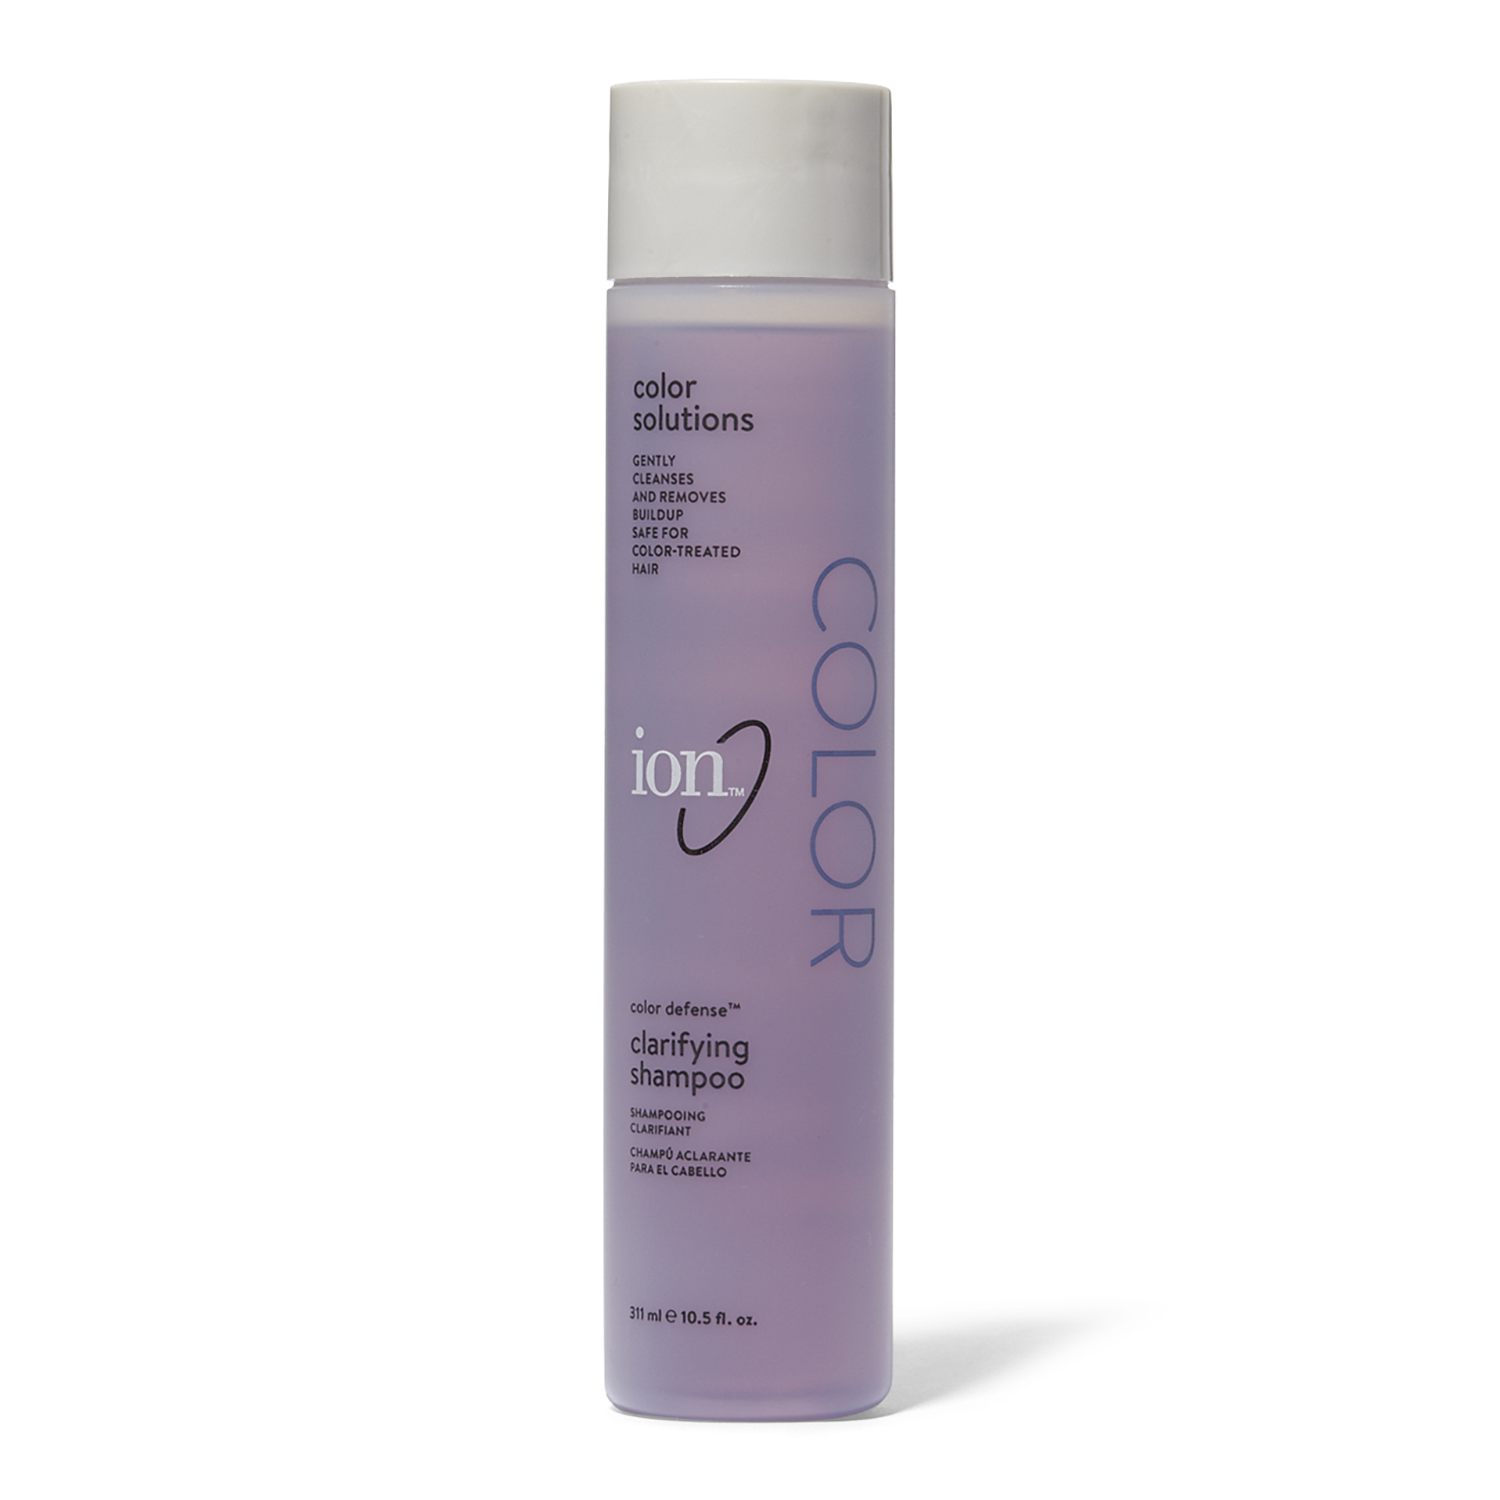 Color Solutions Color Defense Clarifying Shampoo By Ion Shampoo